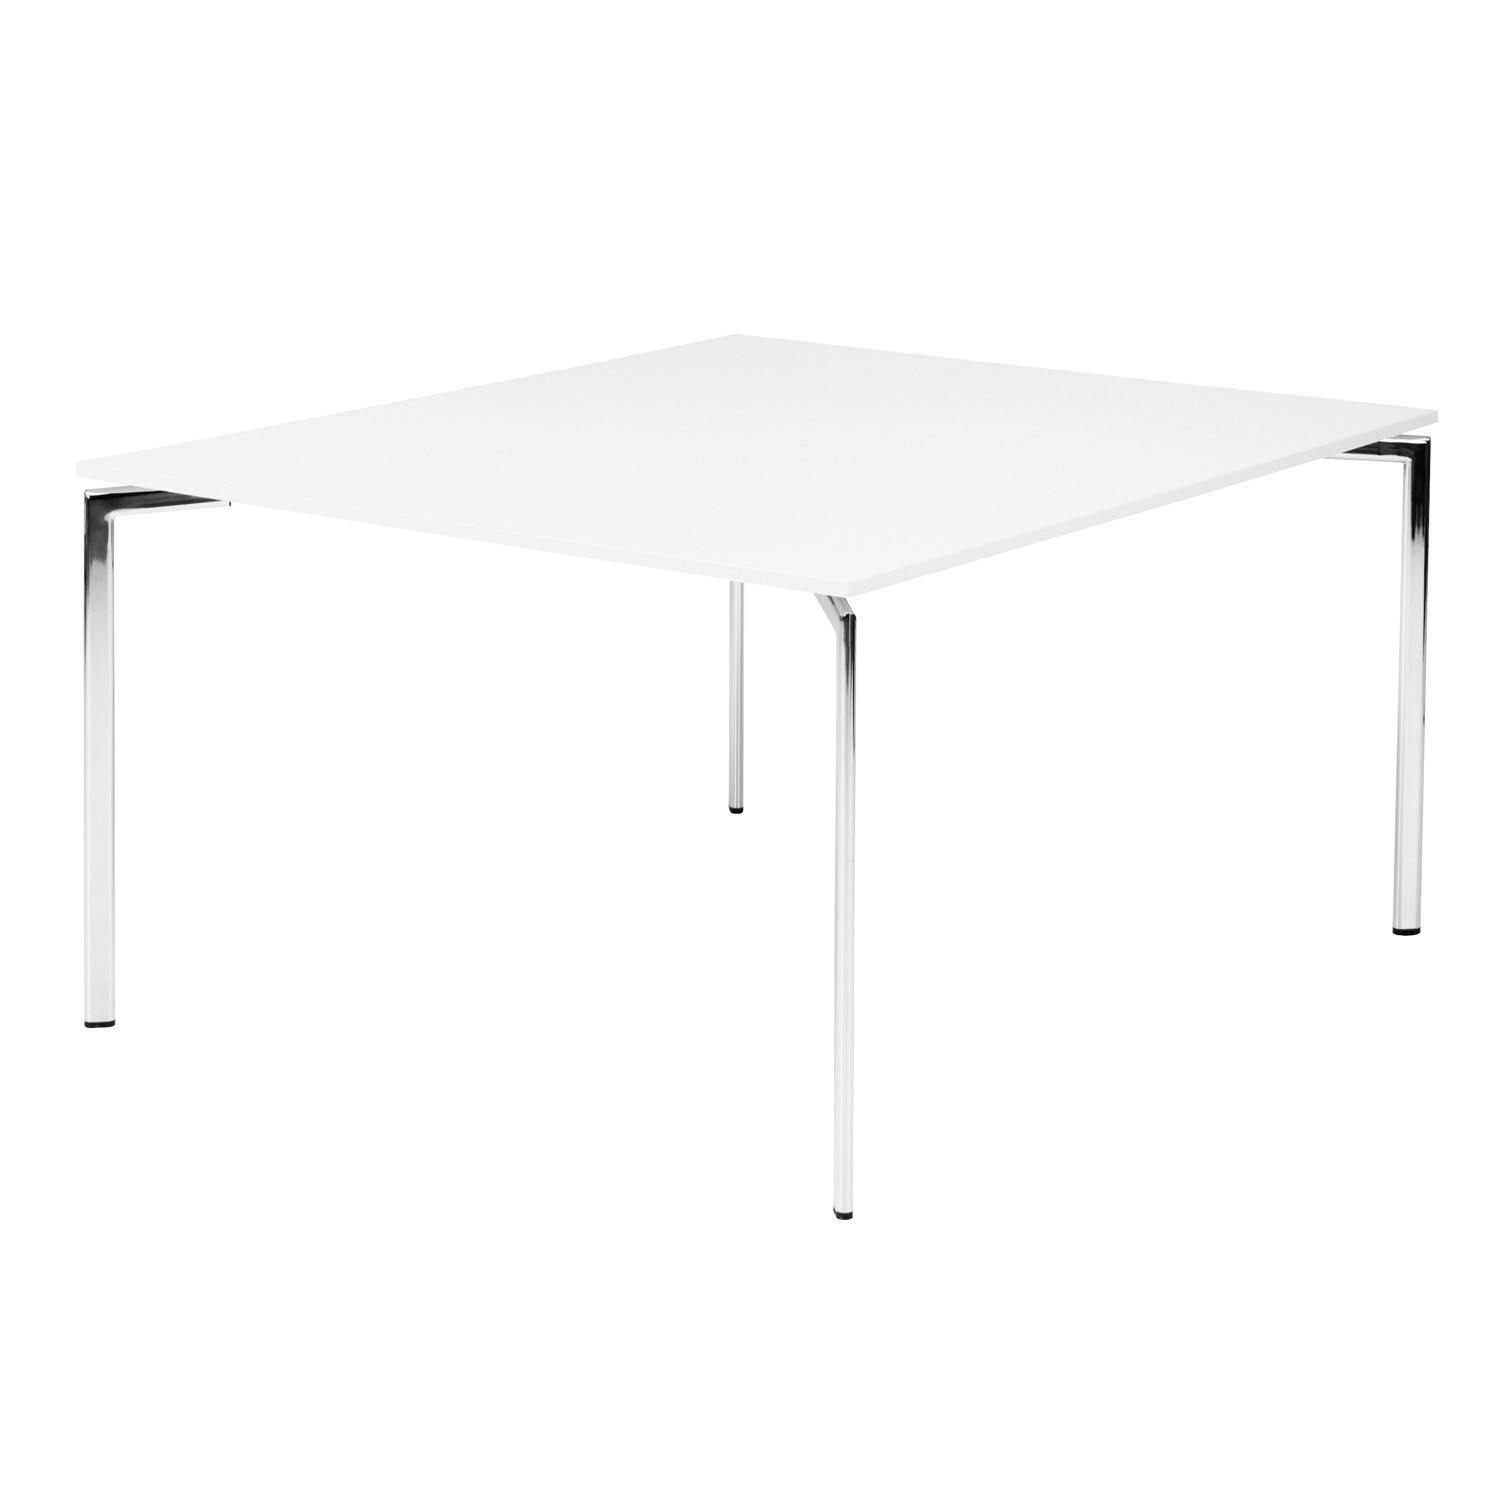 Campus Meeting Room Table by Lammhults